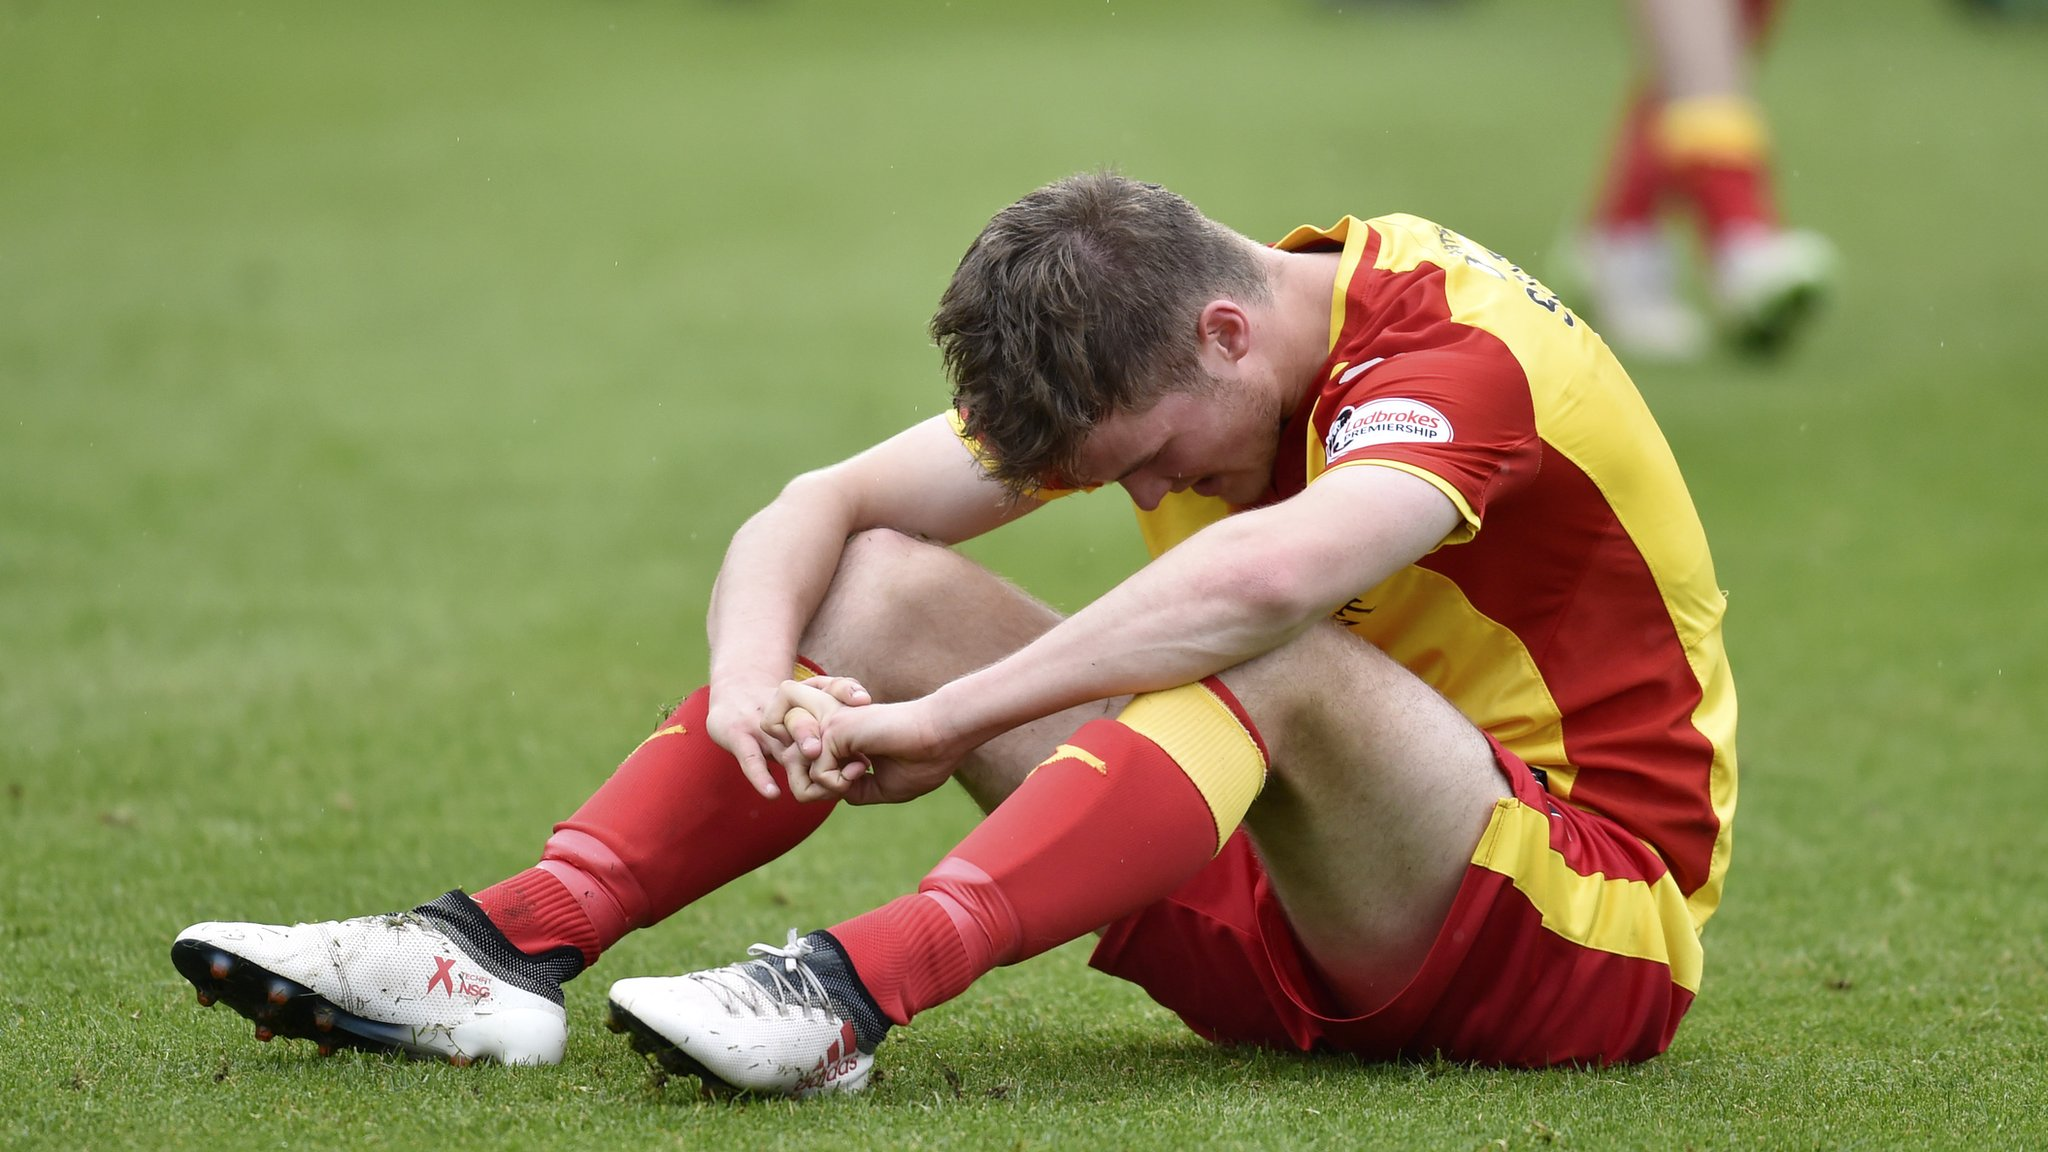 Partick Thistle's relegation could cost club more than £1m, says finance expert